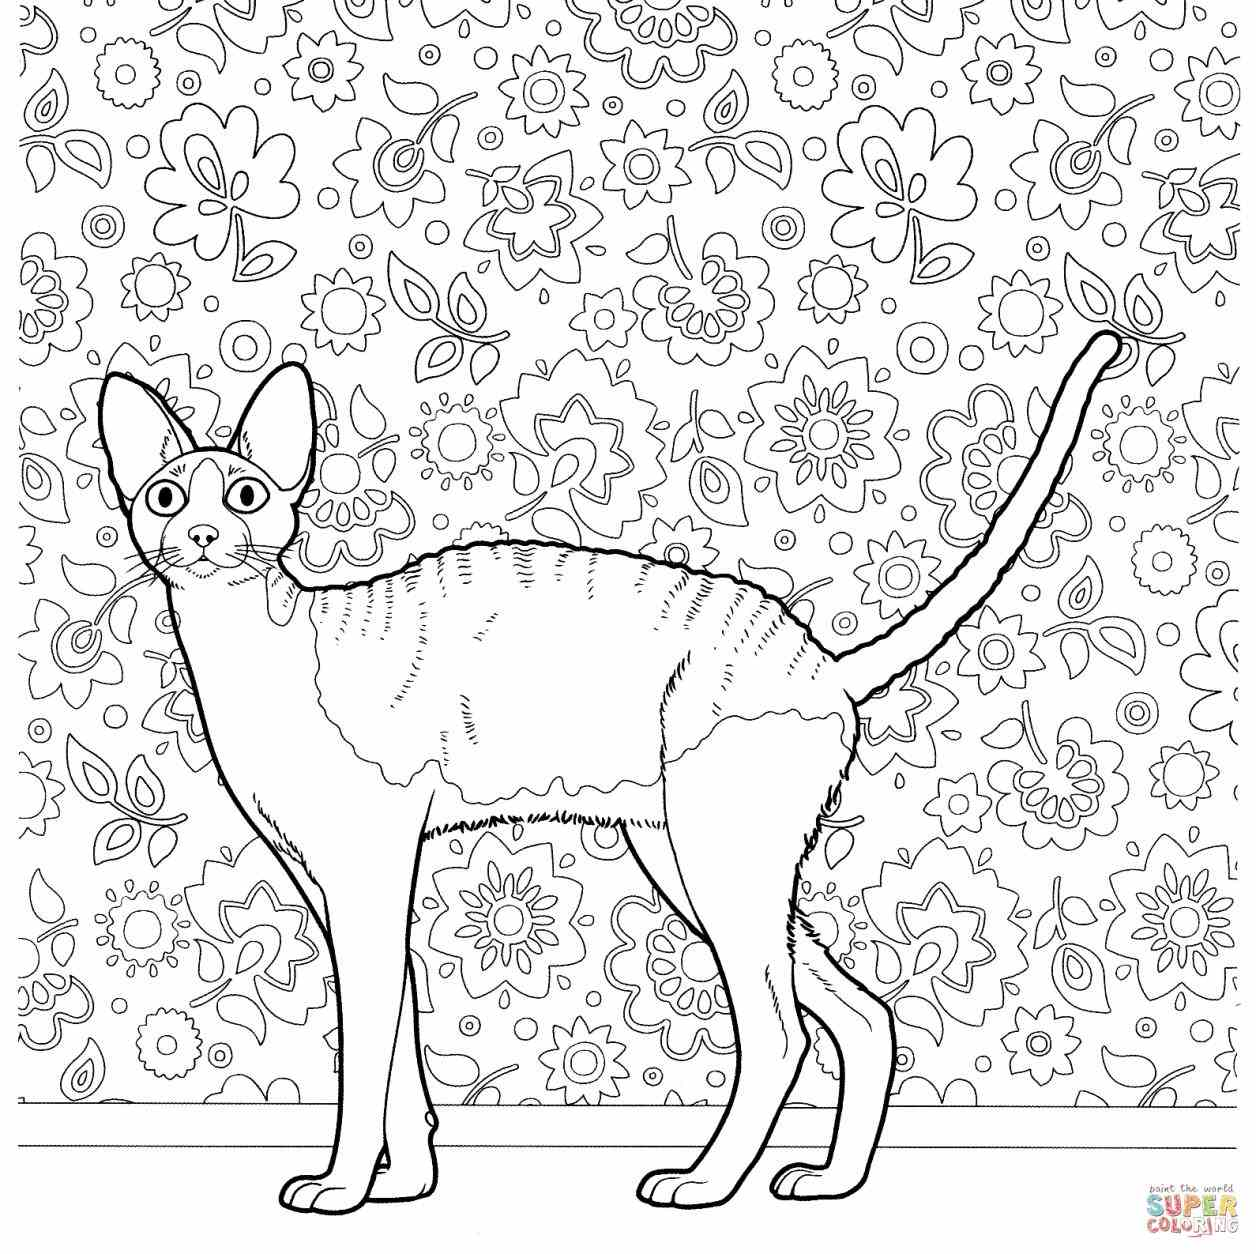 hard cute cat coloring pages cat coloring pages coloringrocks coloring hard cat pages cute